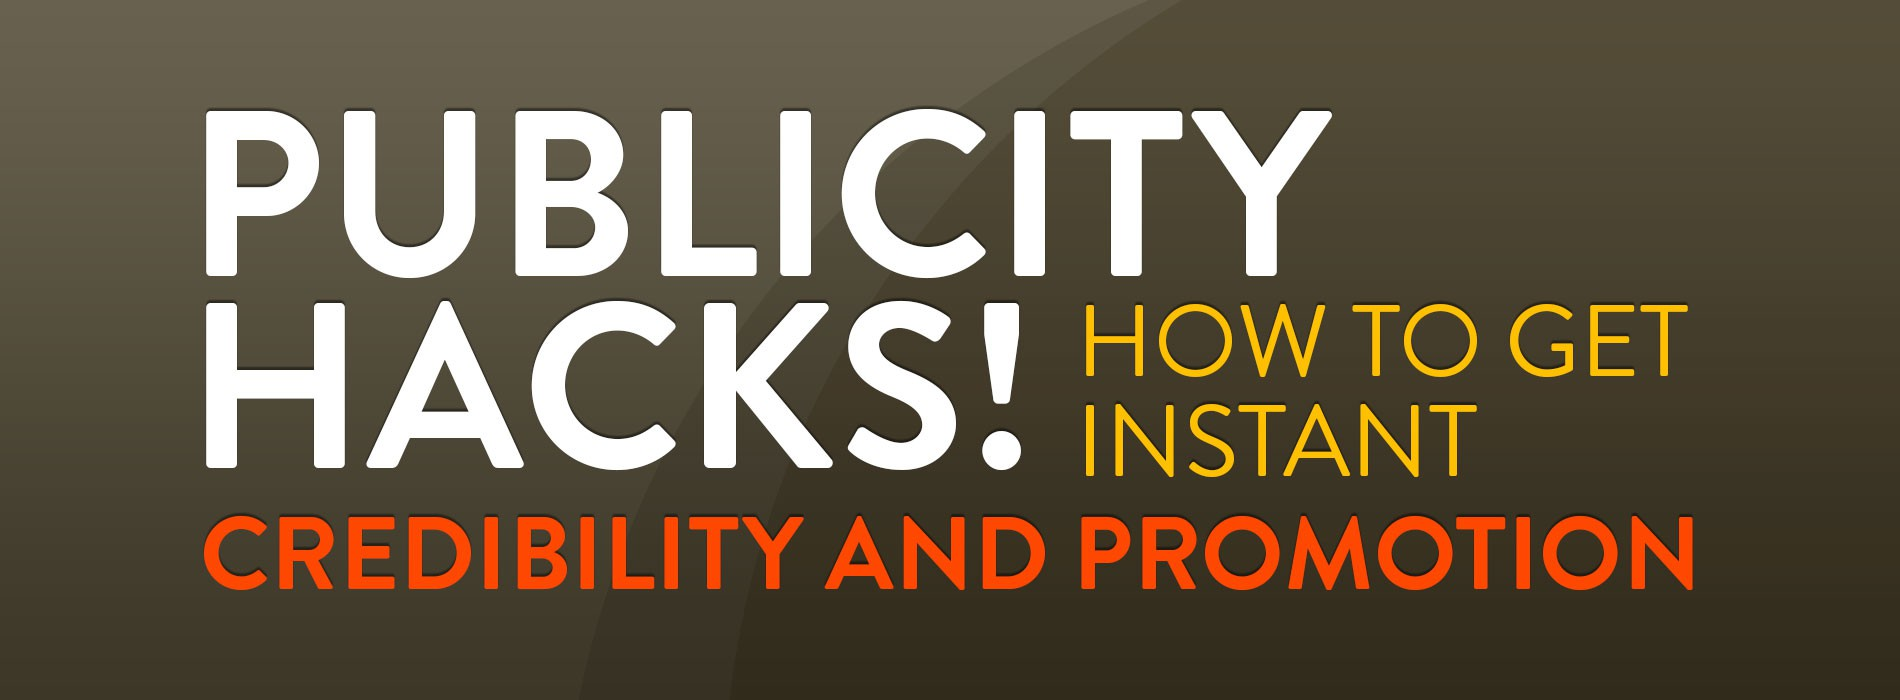 1900 x 700 Product Banner For Publicity Hacks